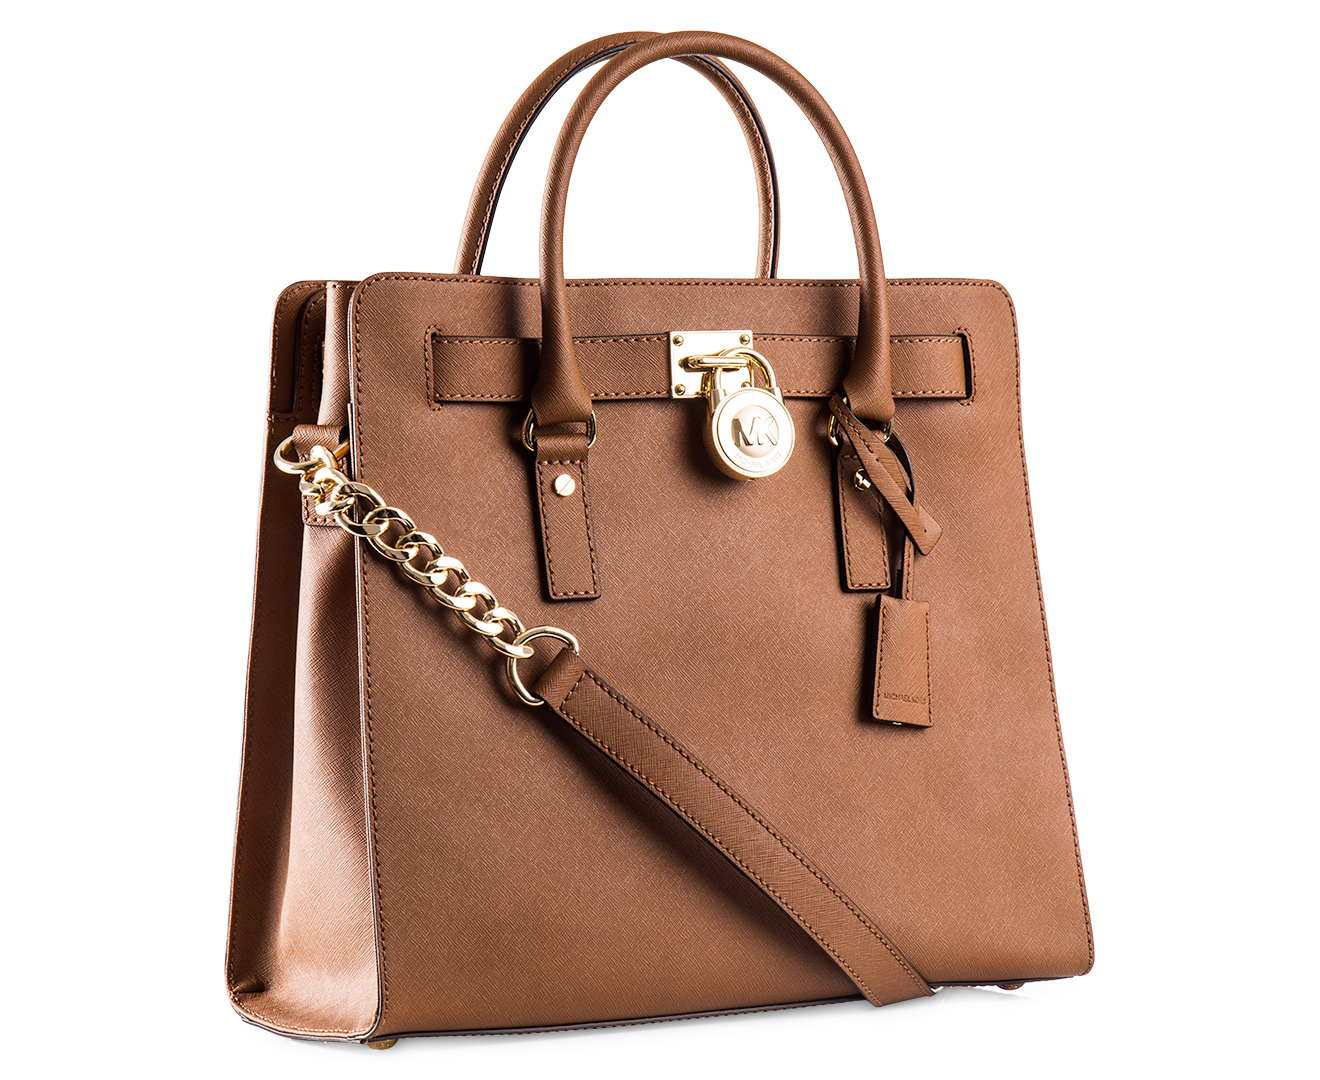 Style and function with Michael Kors handbags. Whether you're looking for a strong investment piece, a new handbag to replace one that is worn out, or something to suit your new fashion game, you're sure to find a great fit with the range of Michael Kors handbags available here on eBay.